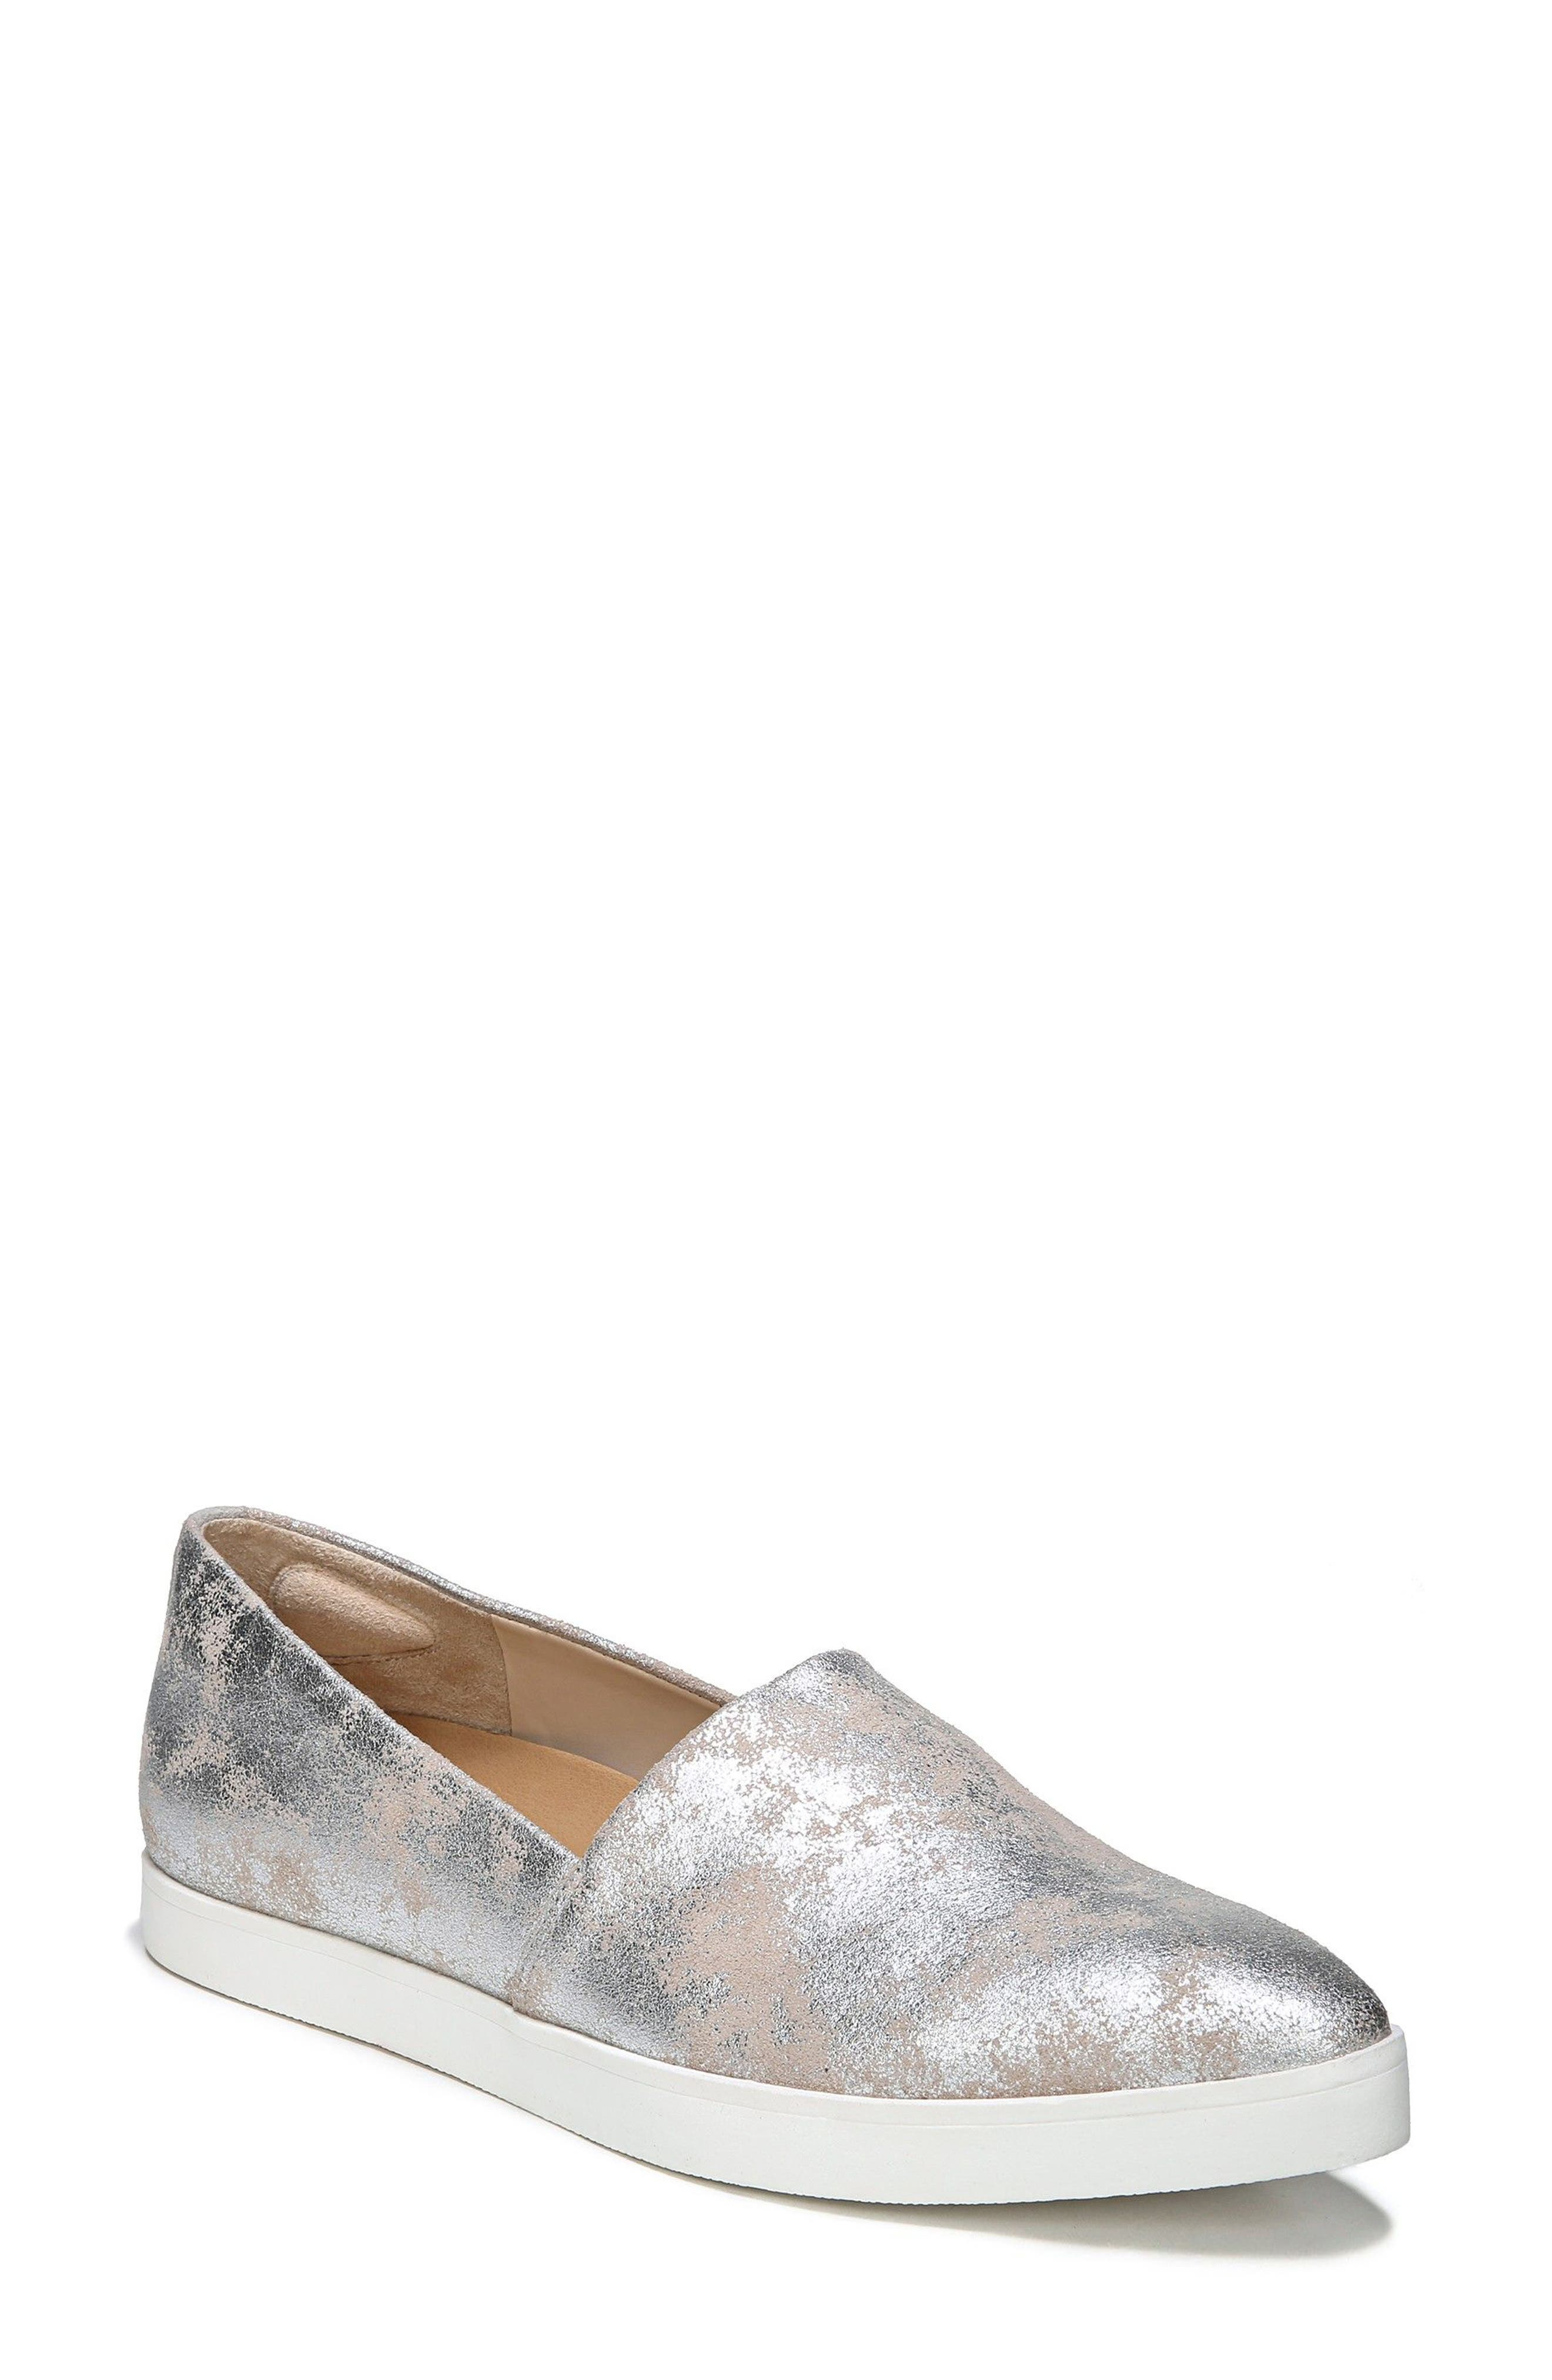 'Vienna' Slip-on Sneaker,                         Main,                         color, Silver Leather